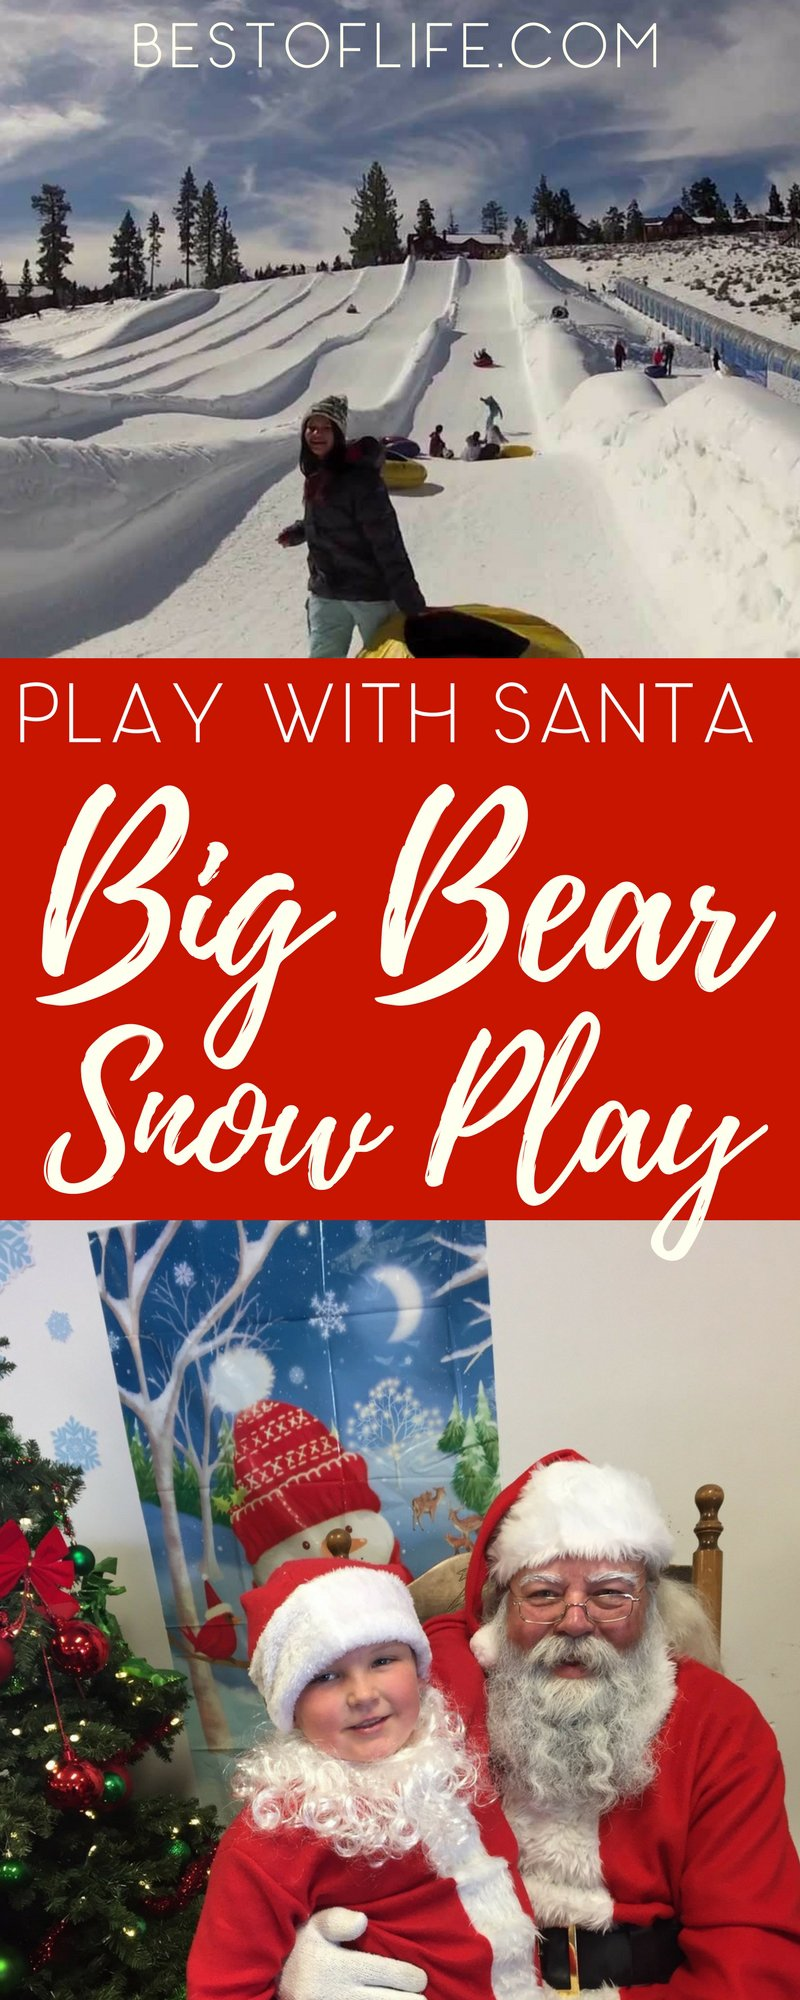 Snow tubing at Big Bear Snow Play in Southern California is a family tradition and this year, you won't want to miss Santa in Big Bear, tubing alongside everyone. Santa Claus Visit | Visit Santa Claus | Things to do in Big Bear | Big Bear Winter Activities | Big Bear Snow Play | Holiday Events in Big Bear | Things to do for Families in Big Bear